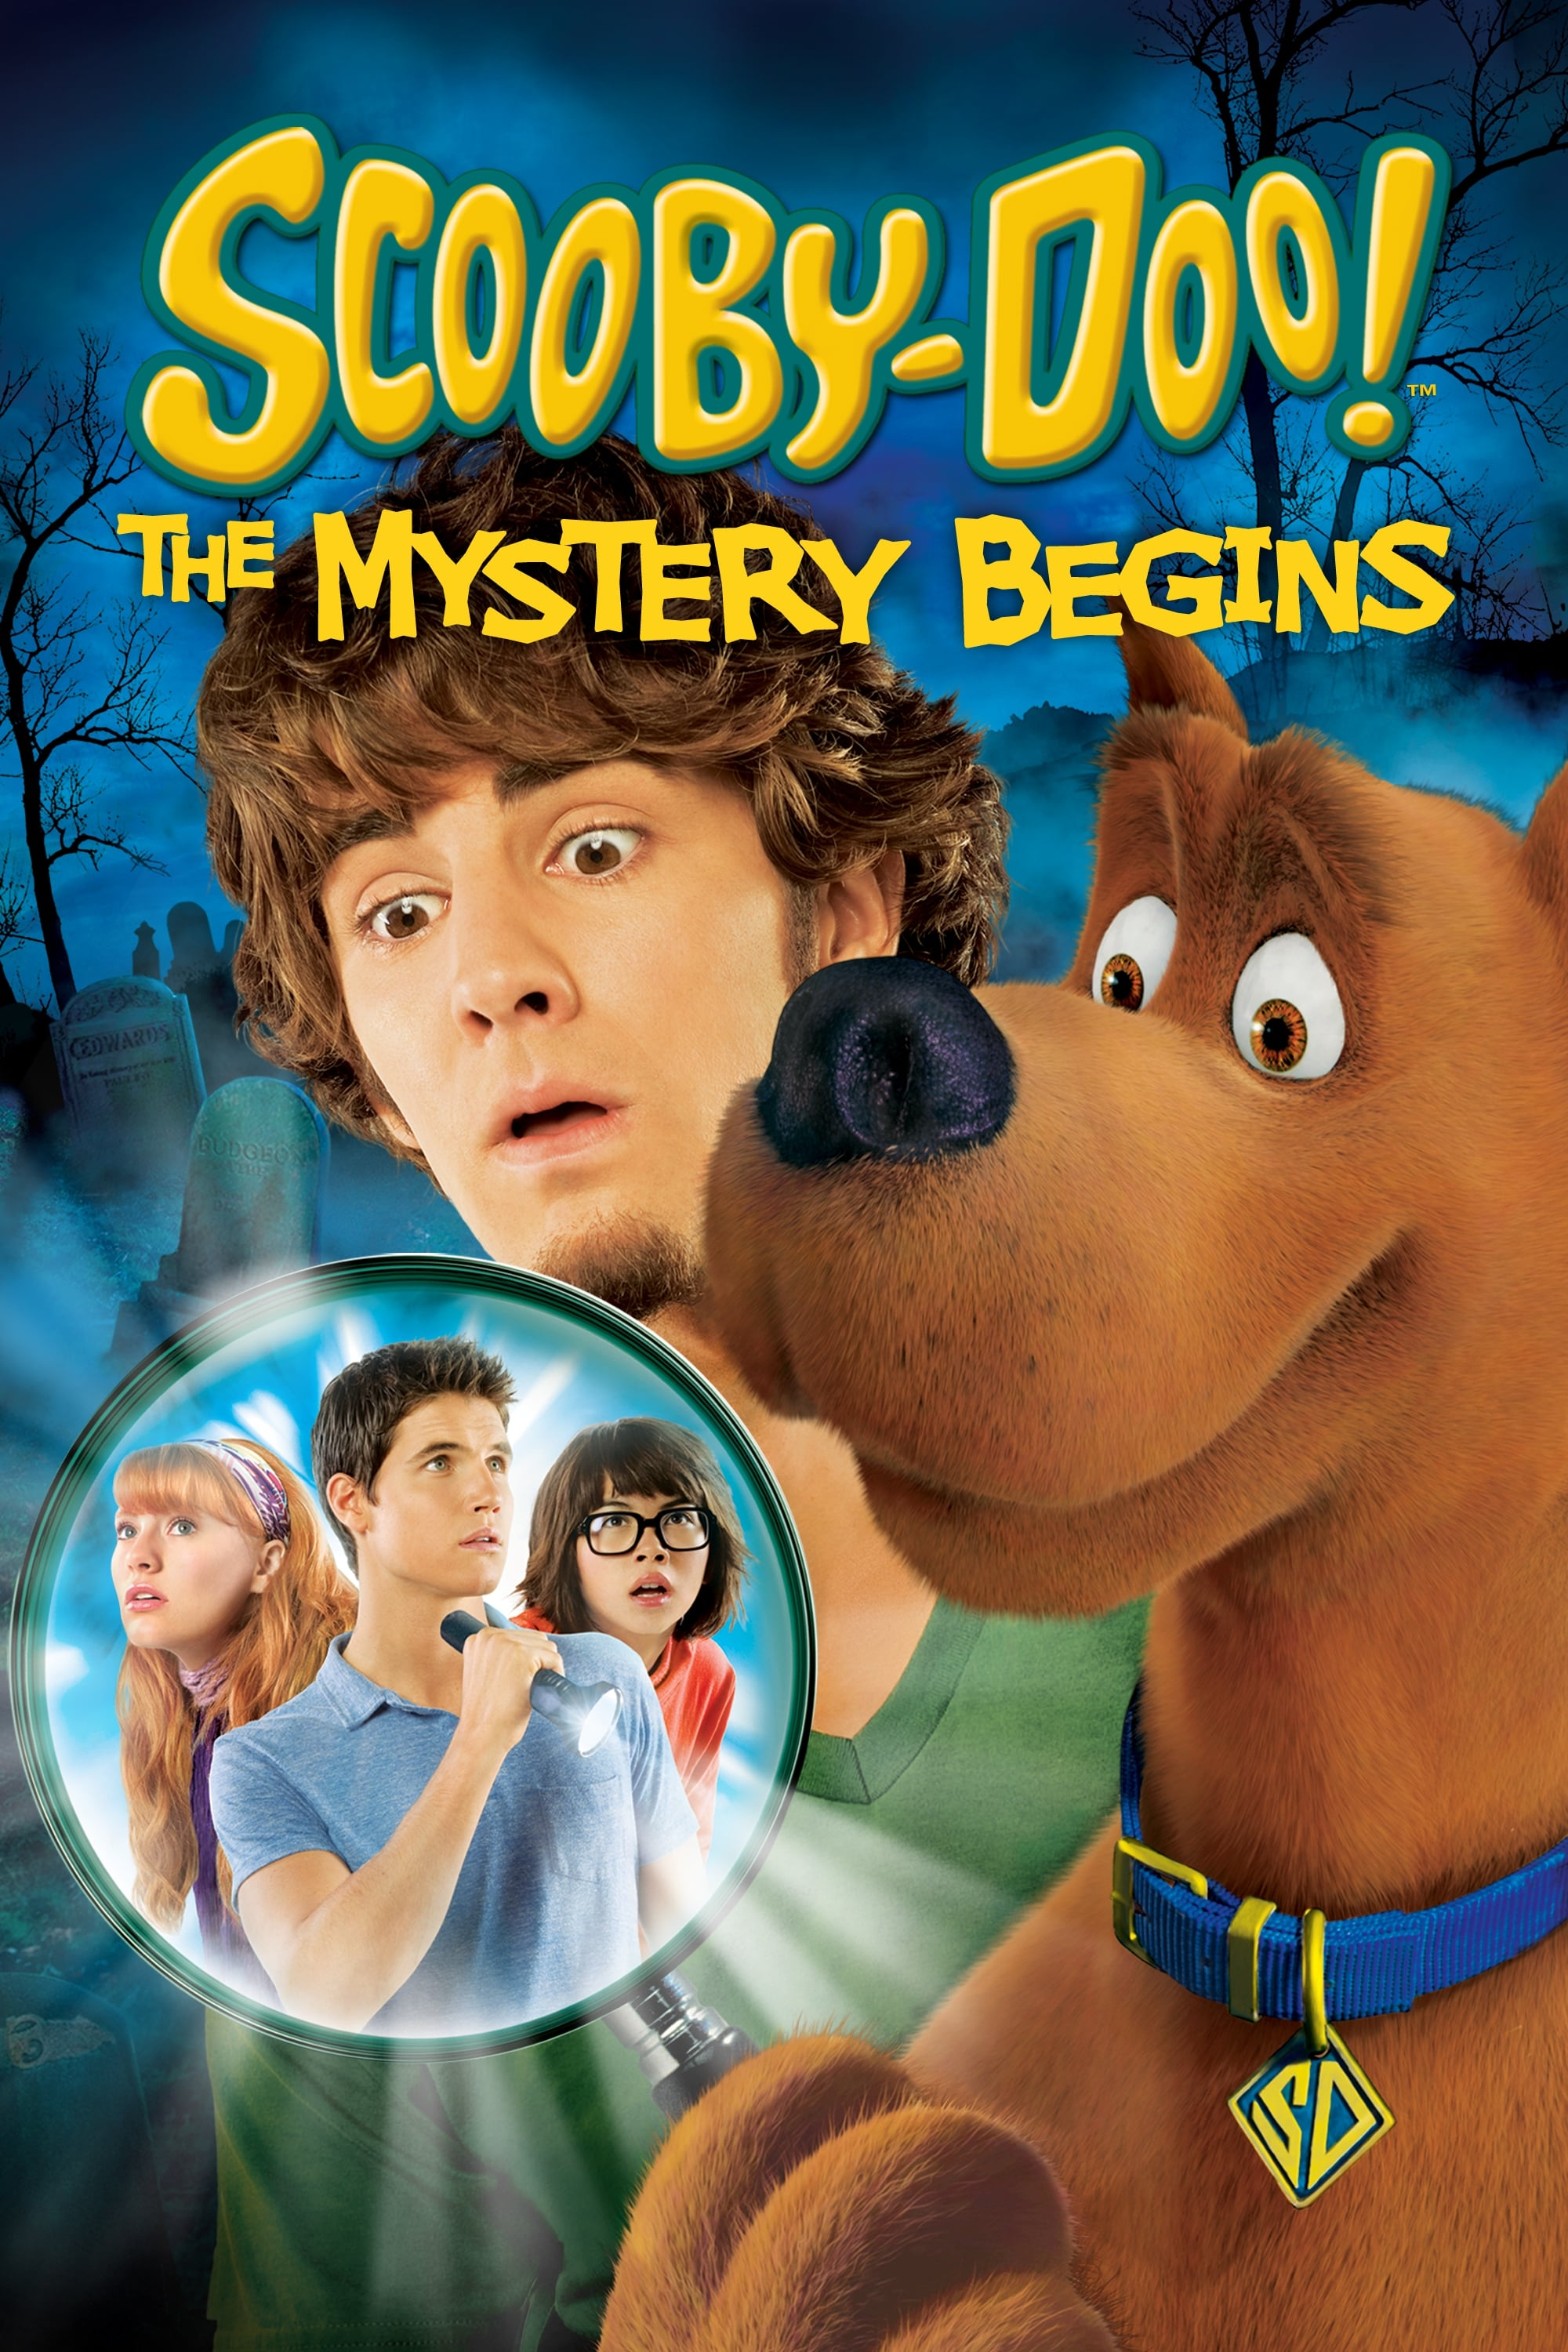 Image Scooby-Doo! The Mystery Begins